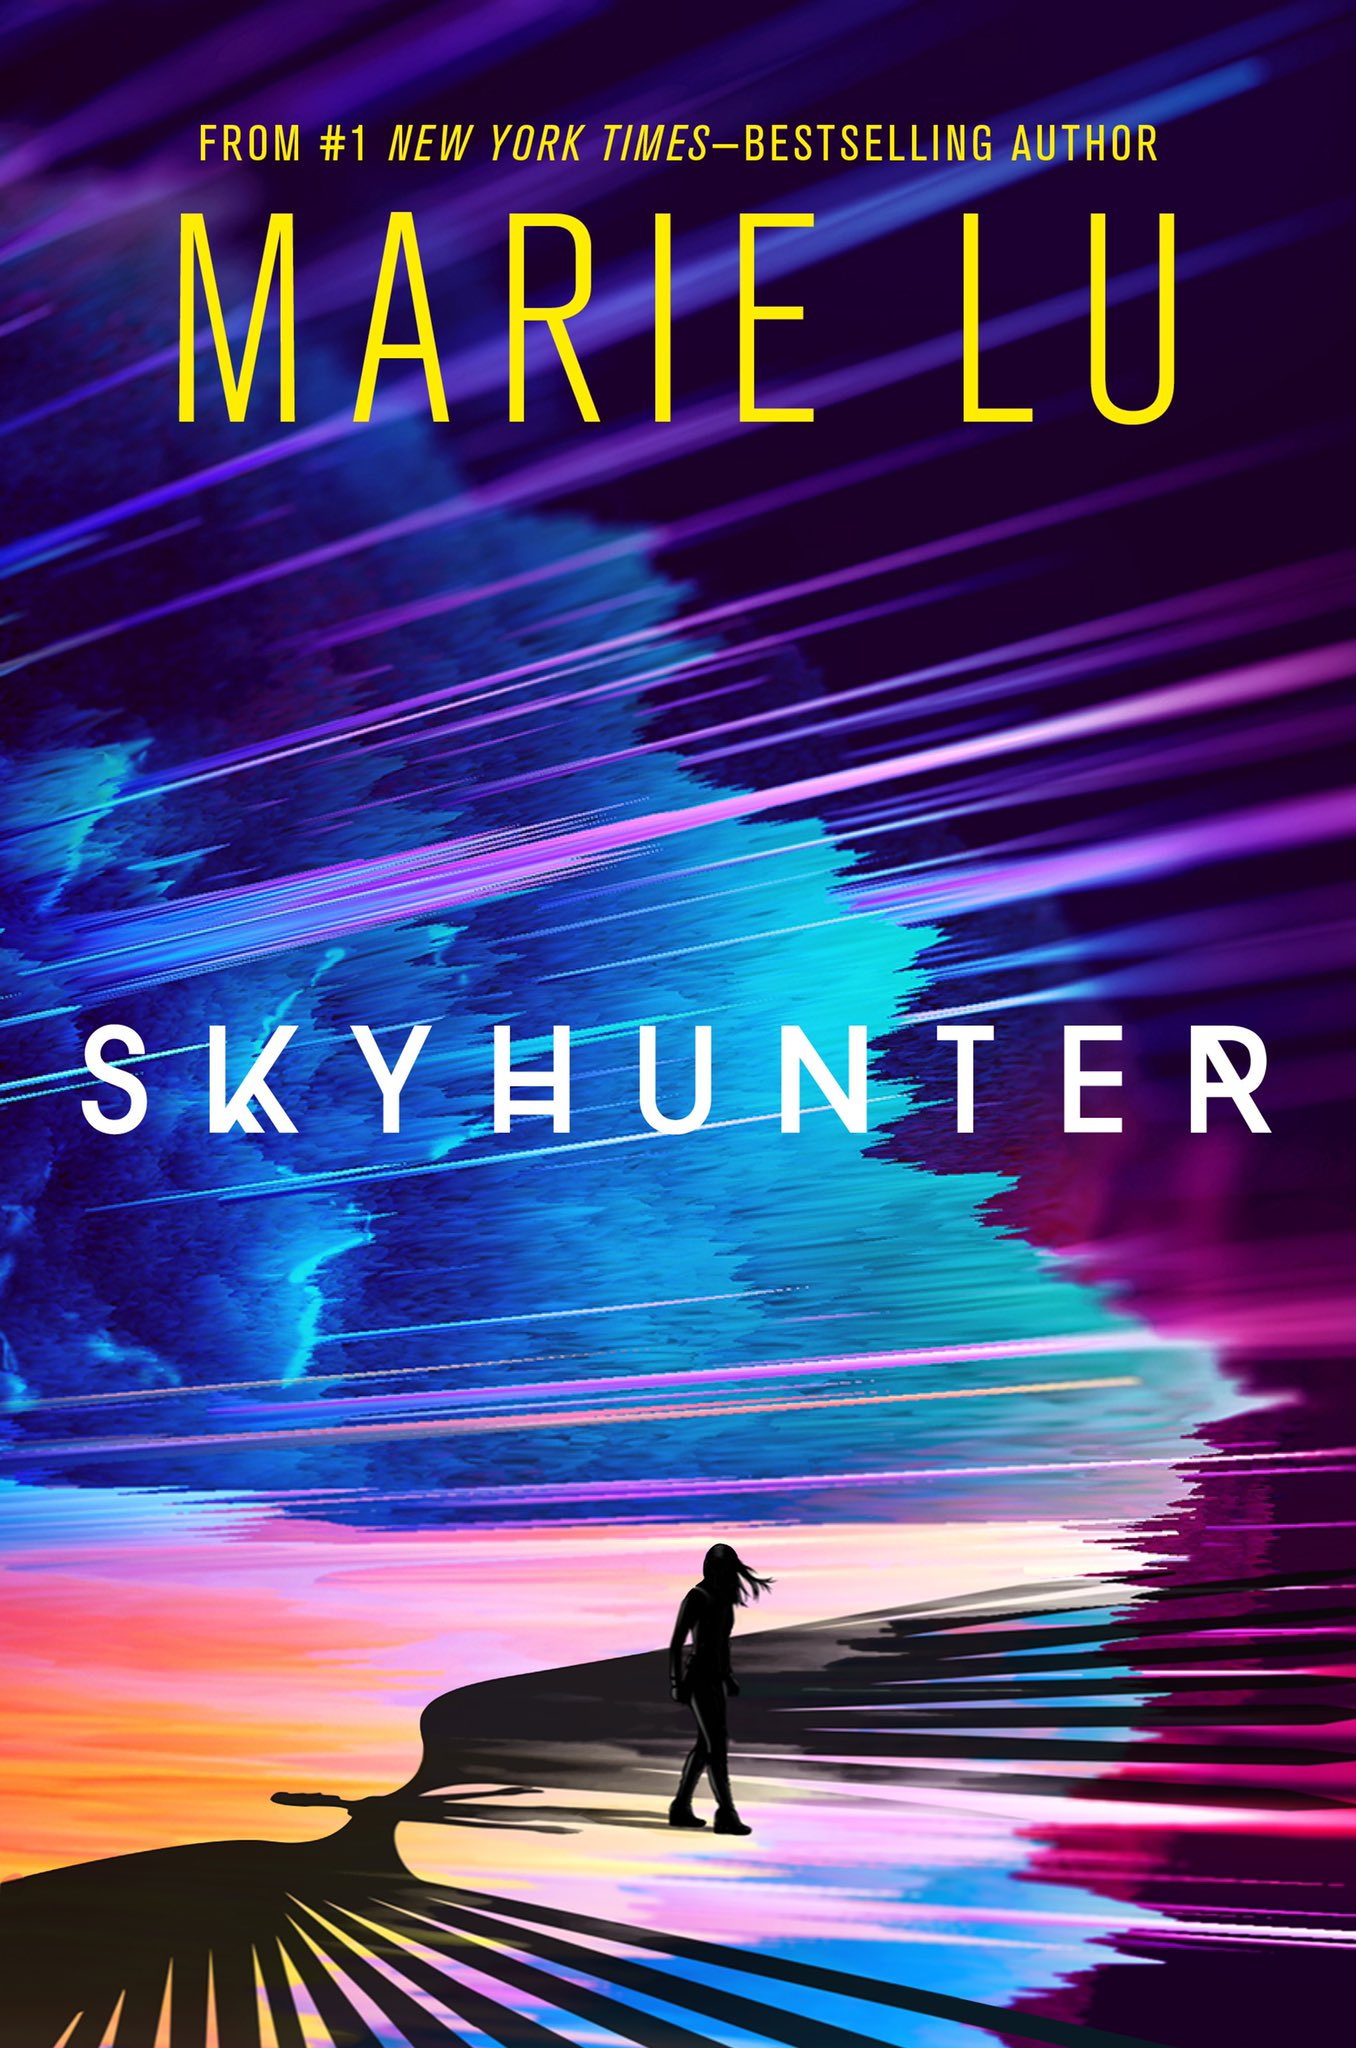 Book Review: Skyhunter by Marie Lu – RARELY IN REALITY